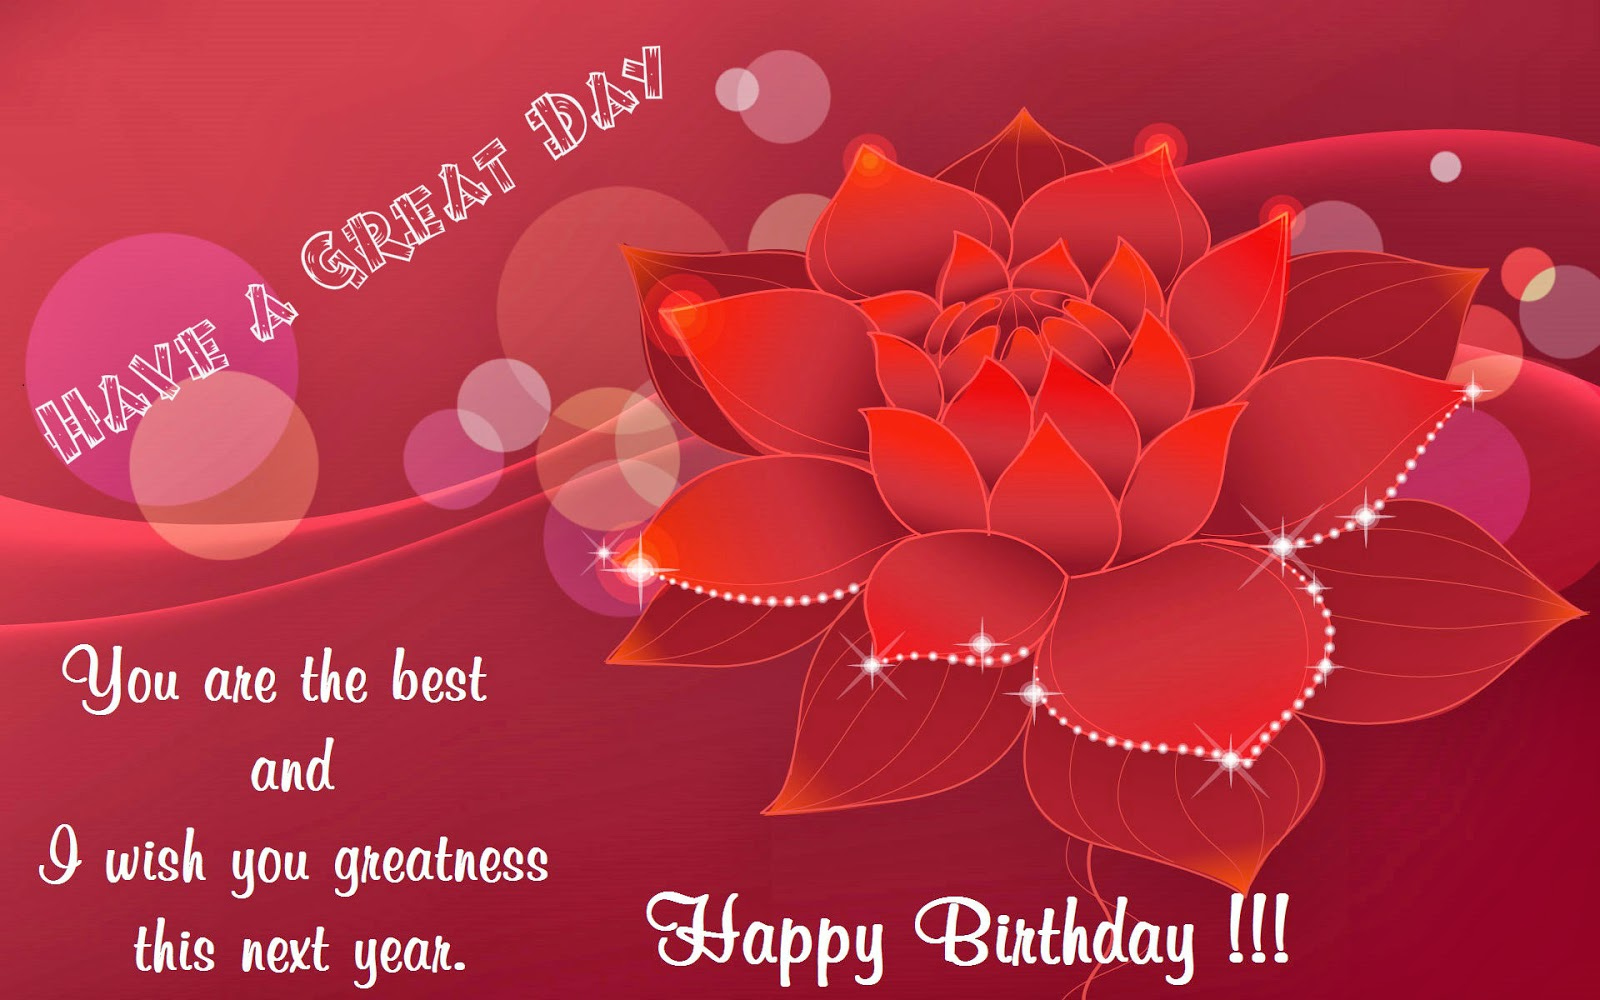 Animated birthday messages cards photo 39 s for friends - Happy birthday card wallpaper ...